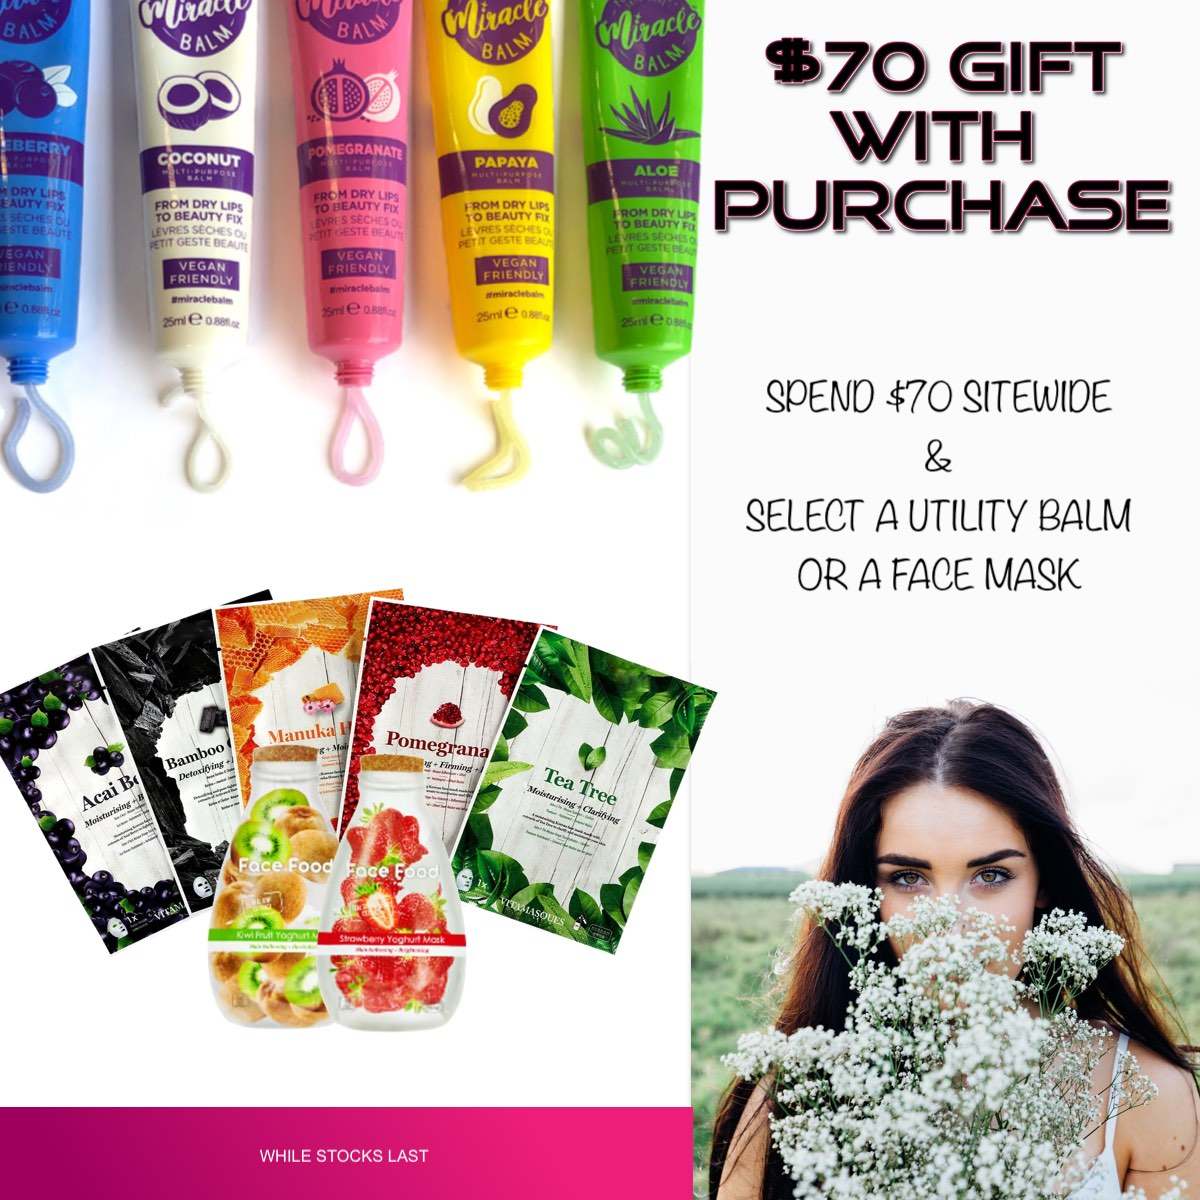 bella scoop gift with purchase $70 spend